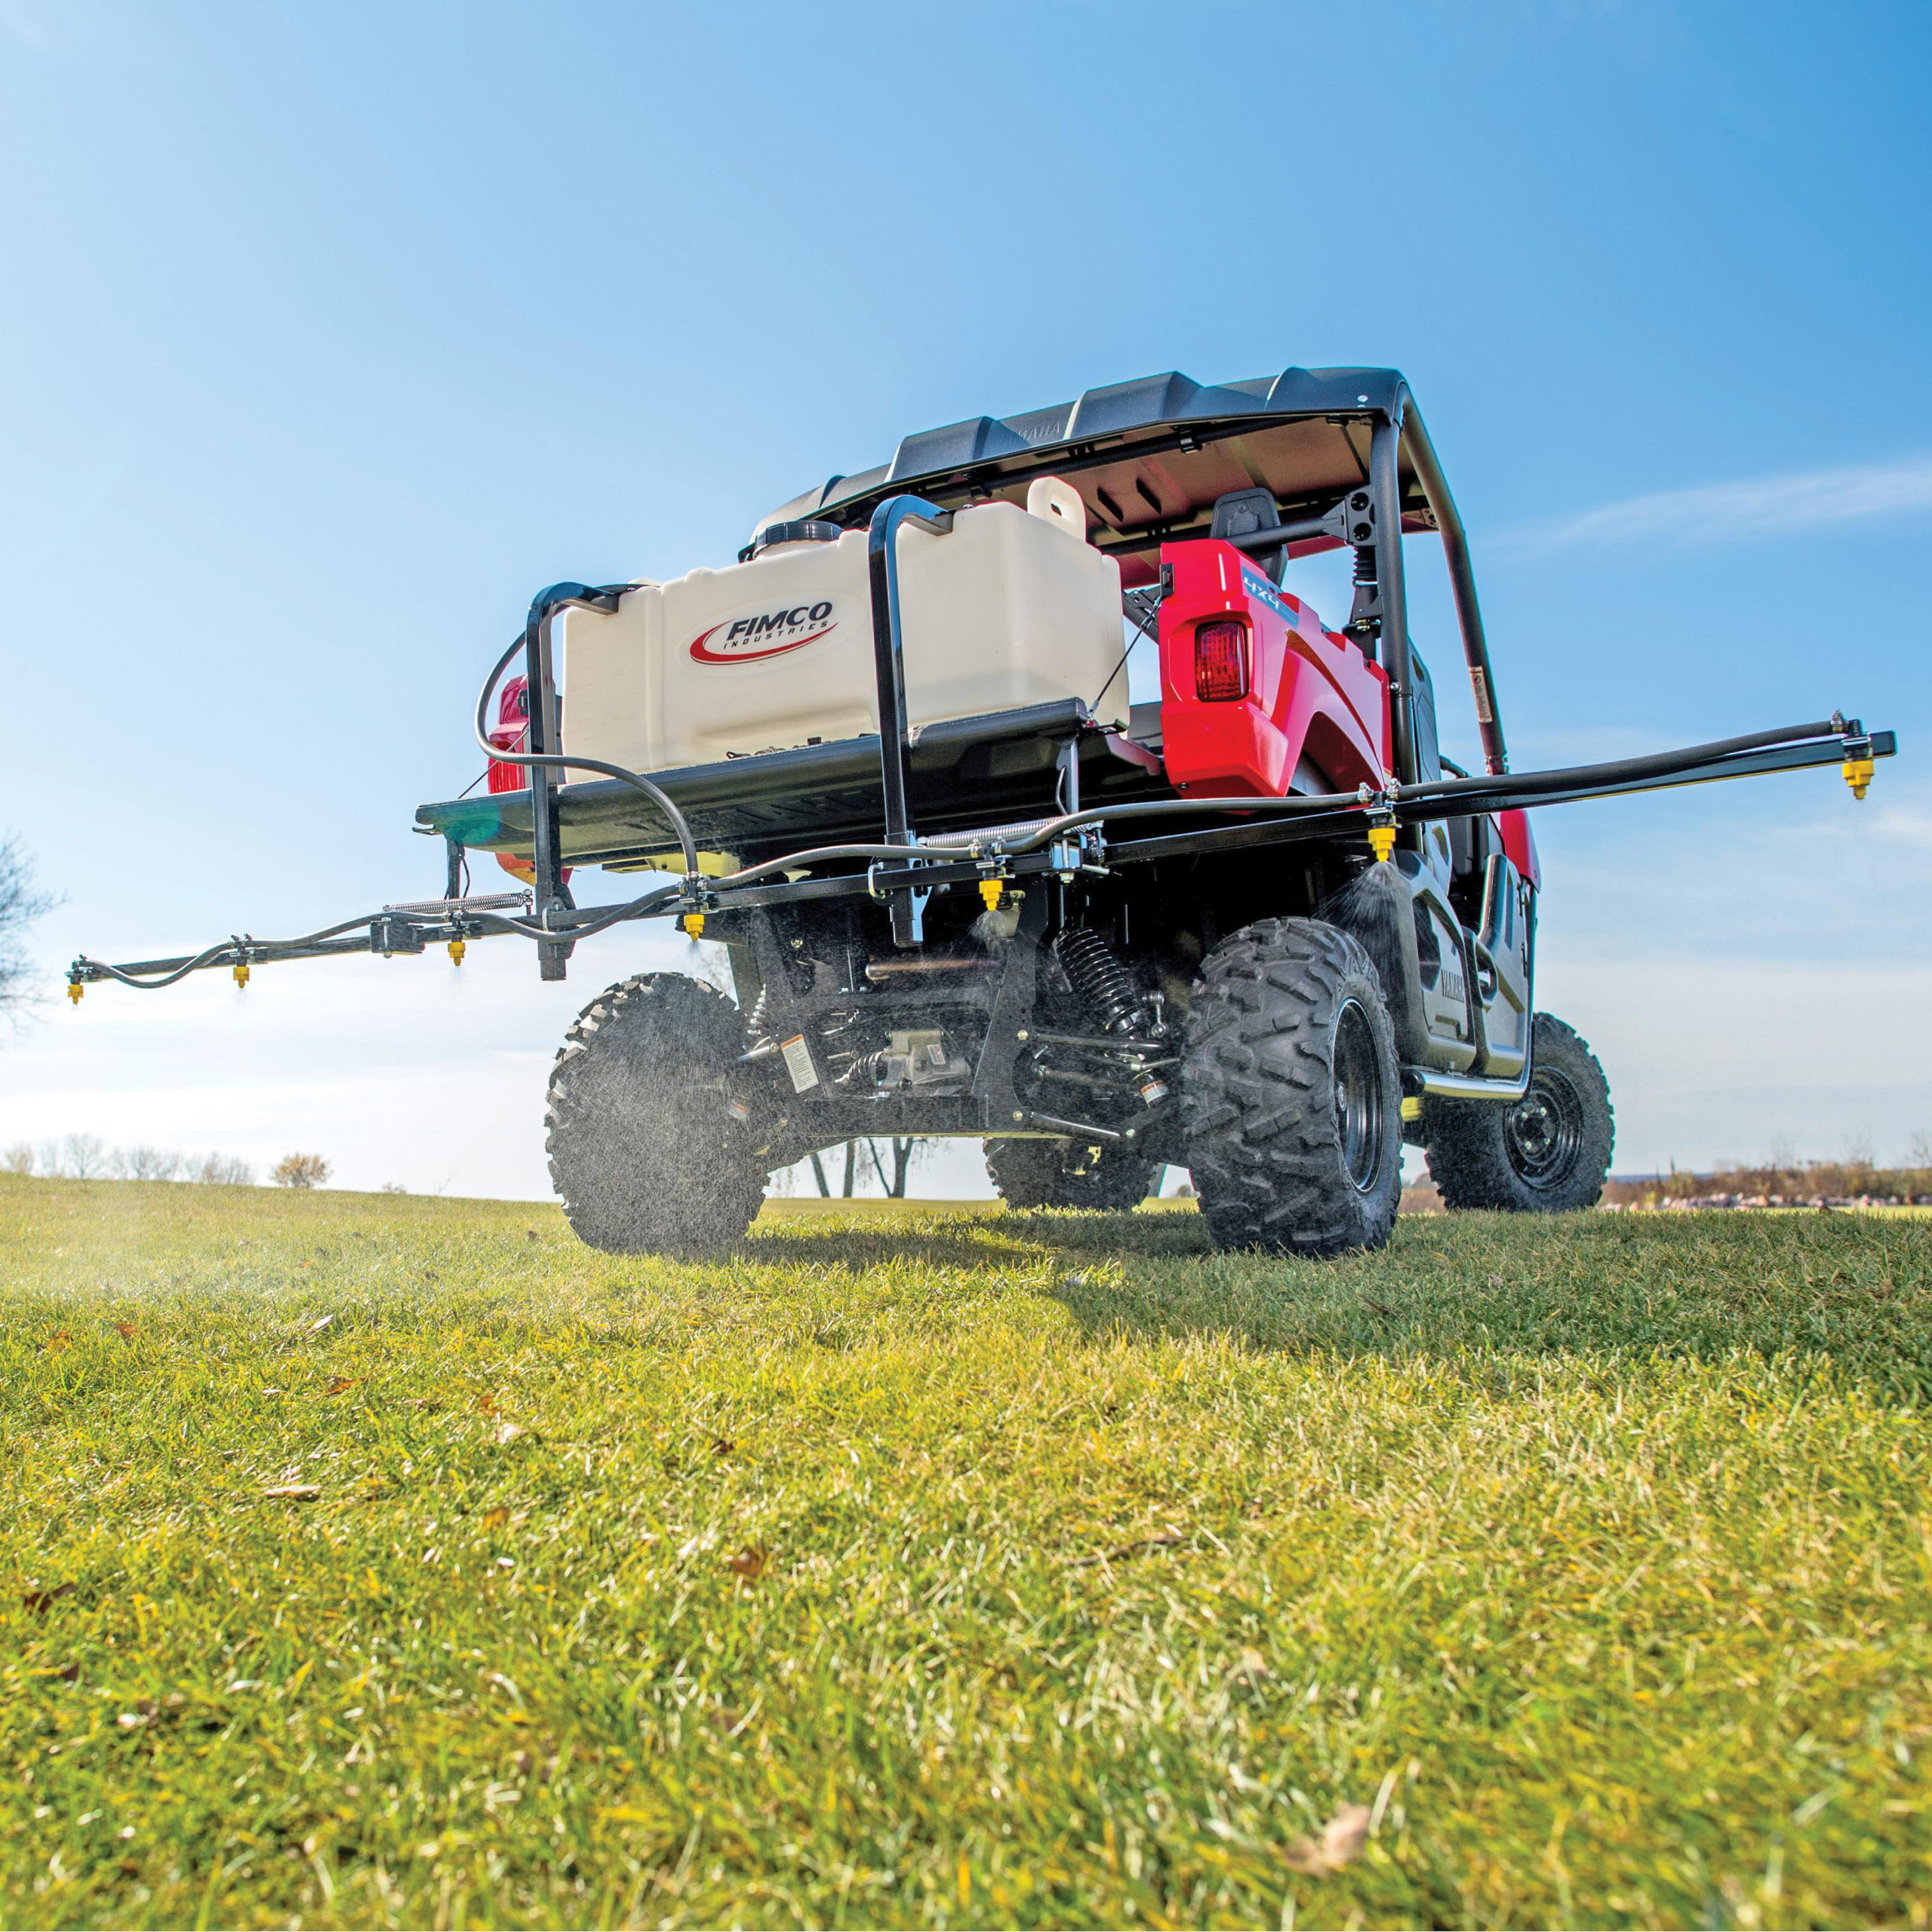 Fimco – 65-Gallon UTV Sprayer